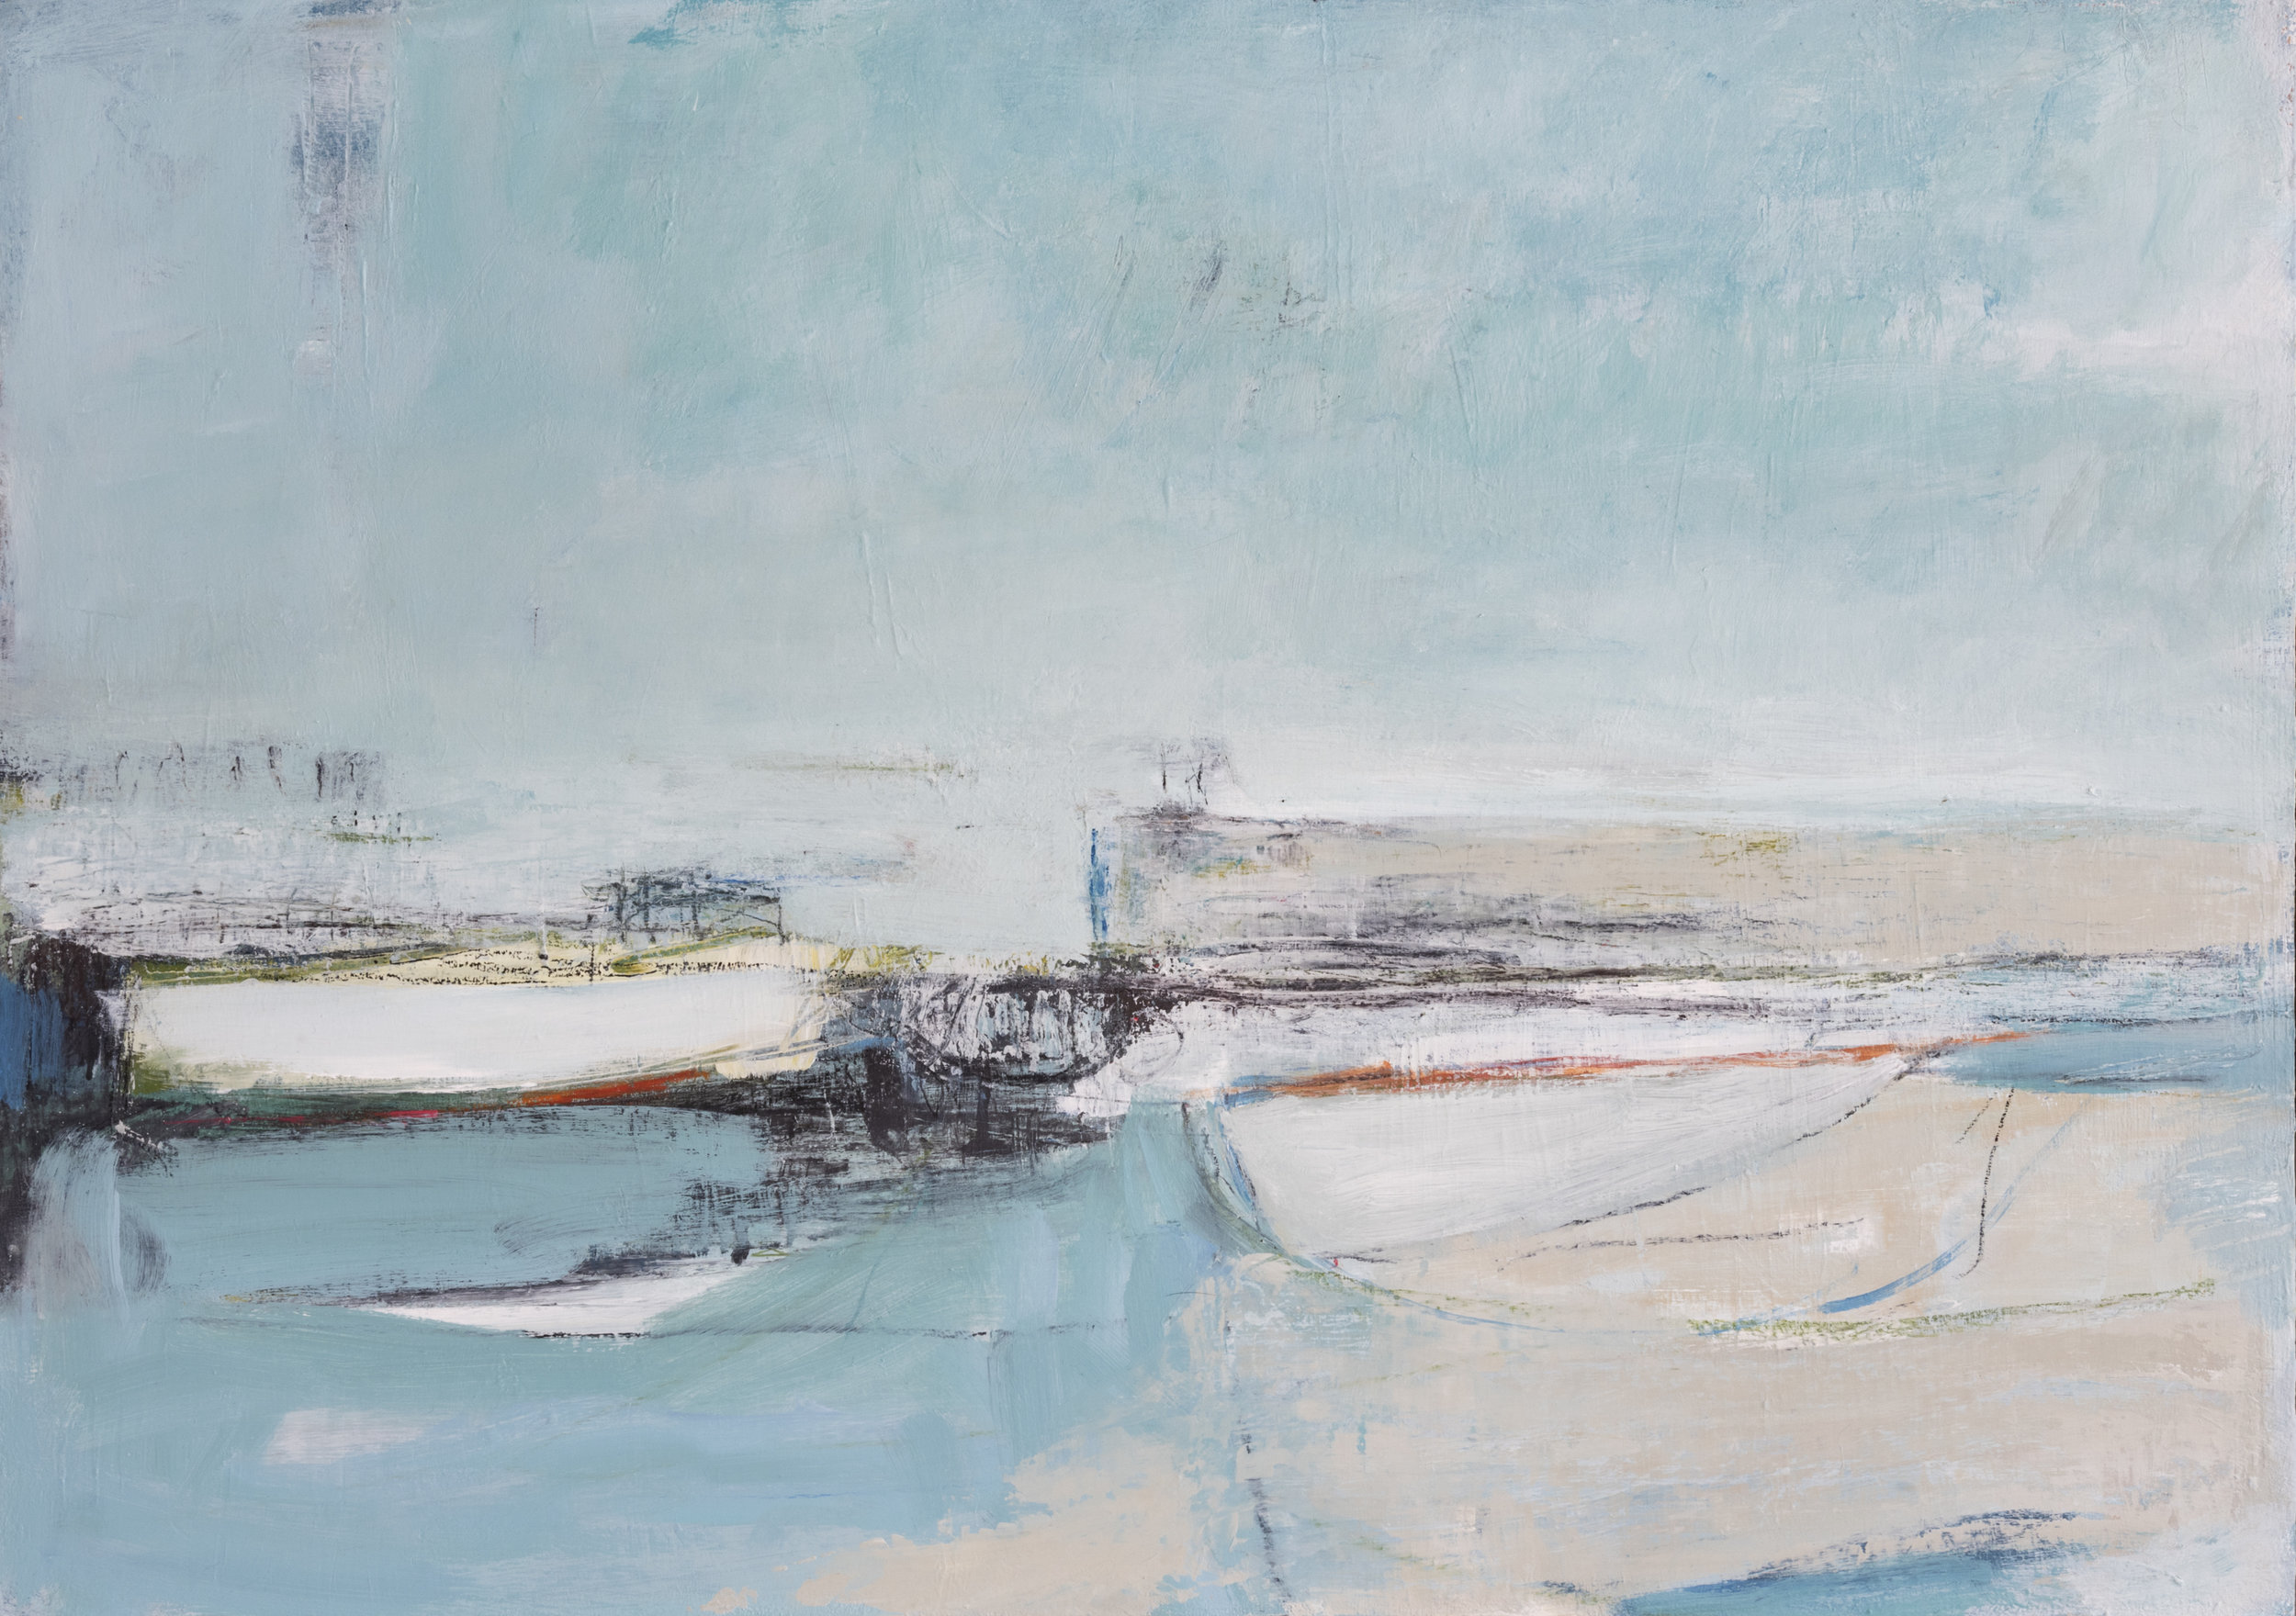 On this Watery Shore  (2018–2019) | Mixed media on panel, 84cm x 60cm, sold